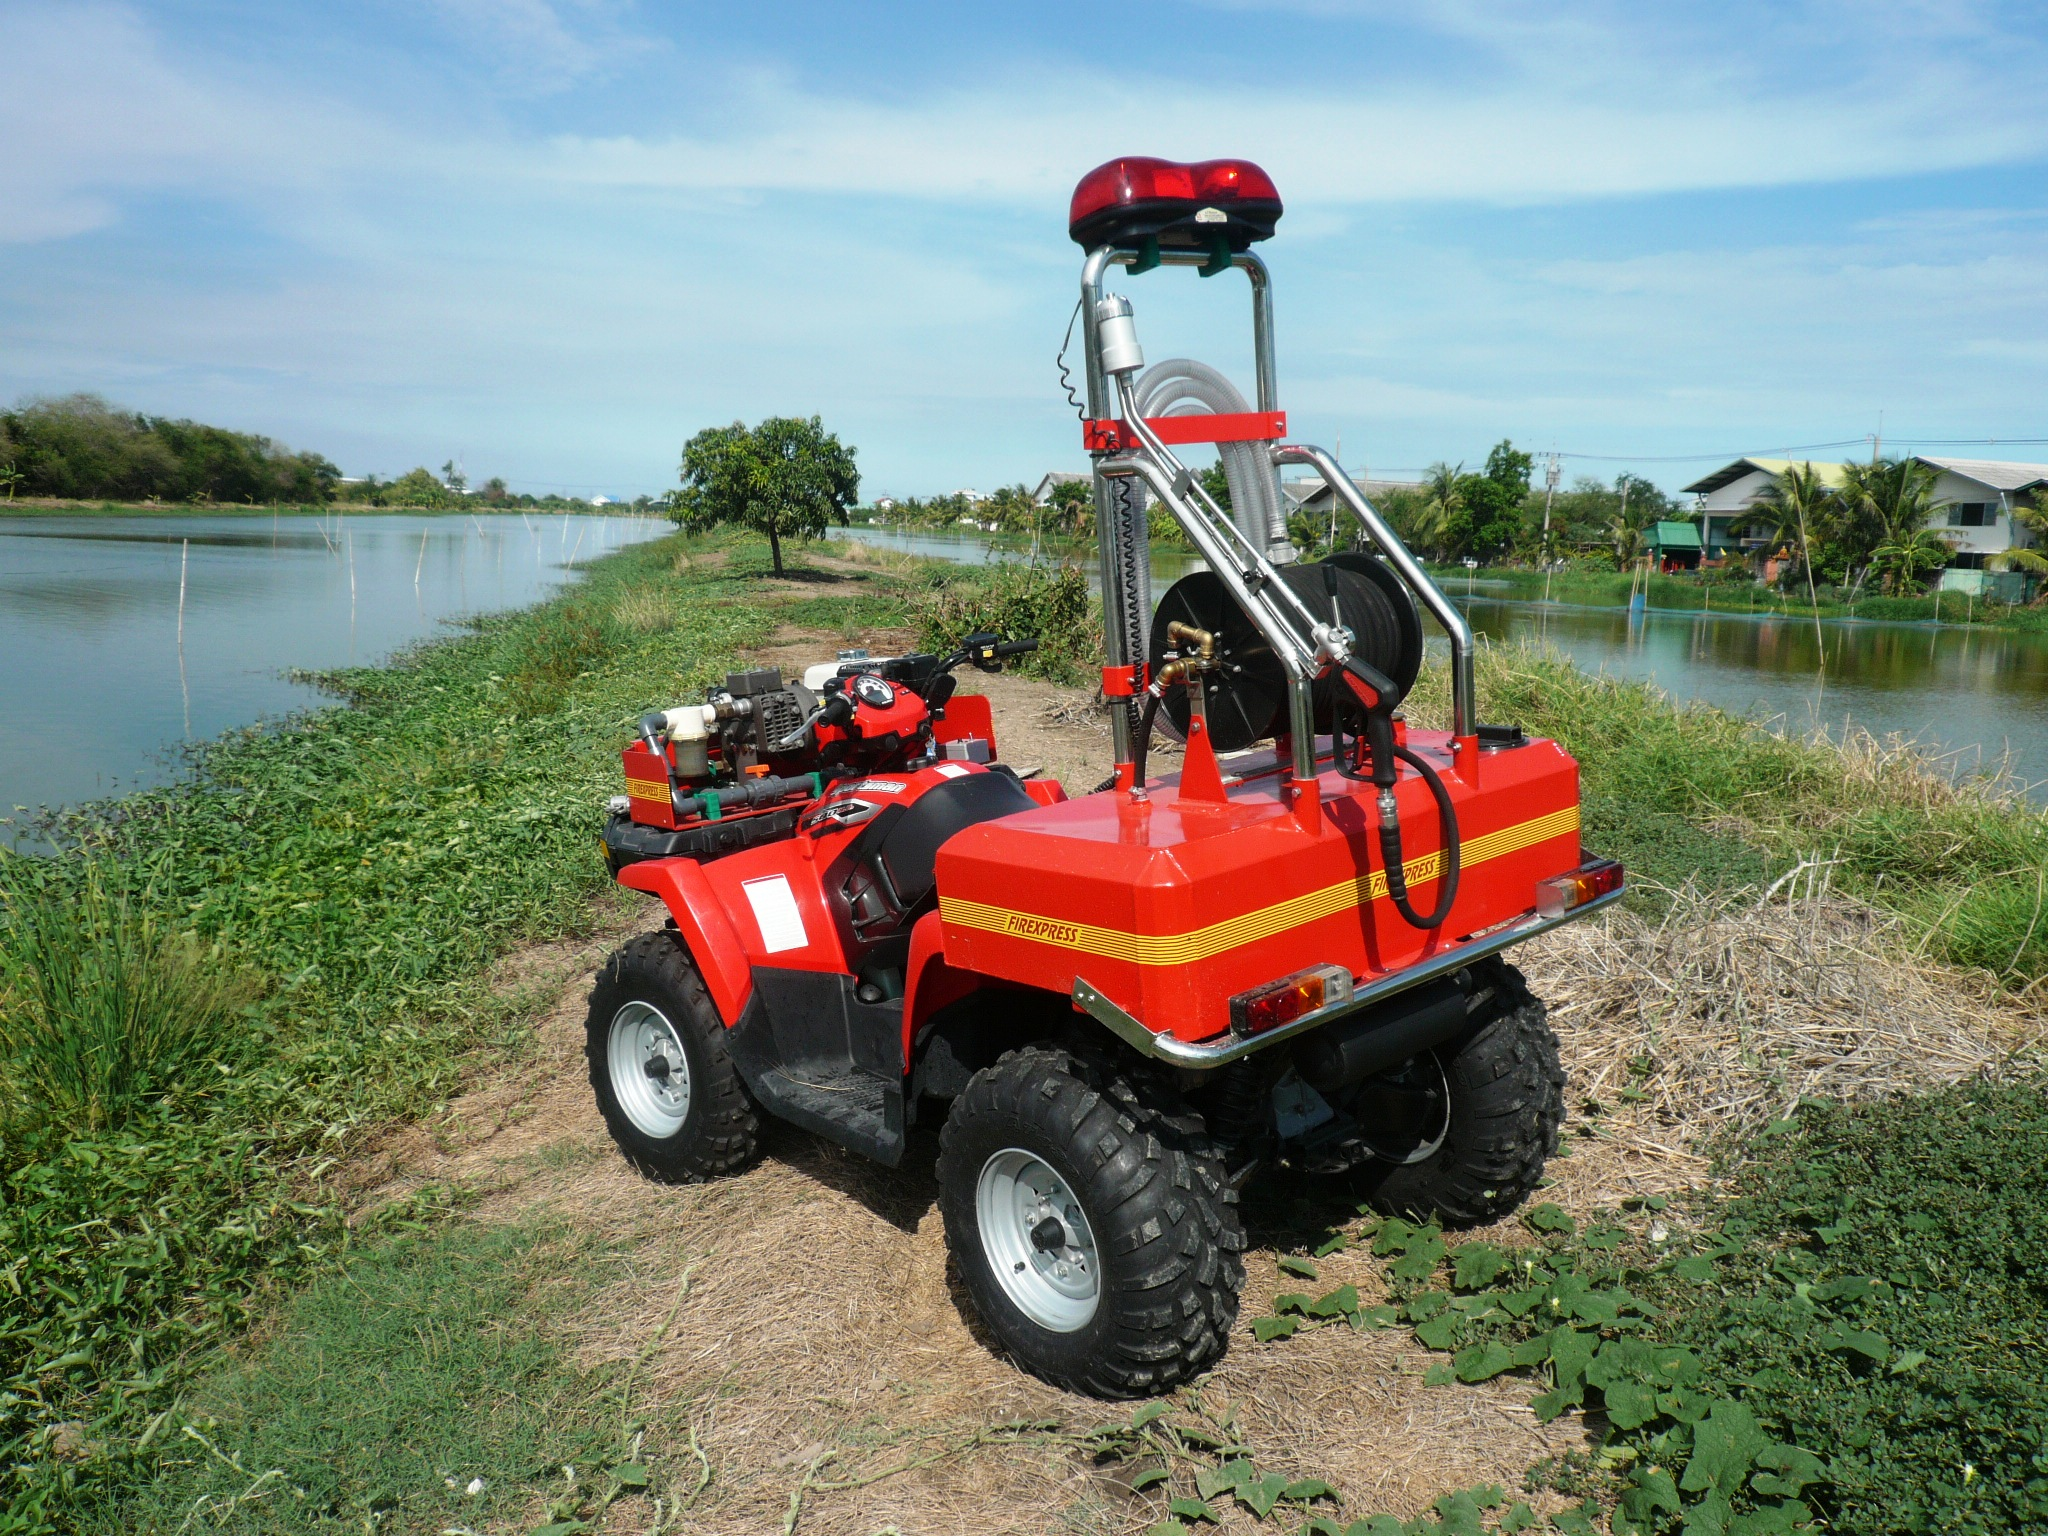 Polaris X2 570 with Firexpress fire fighting equipment